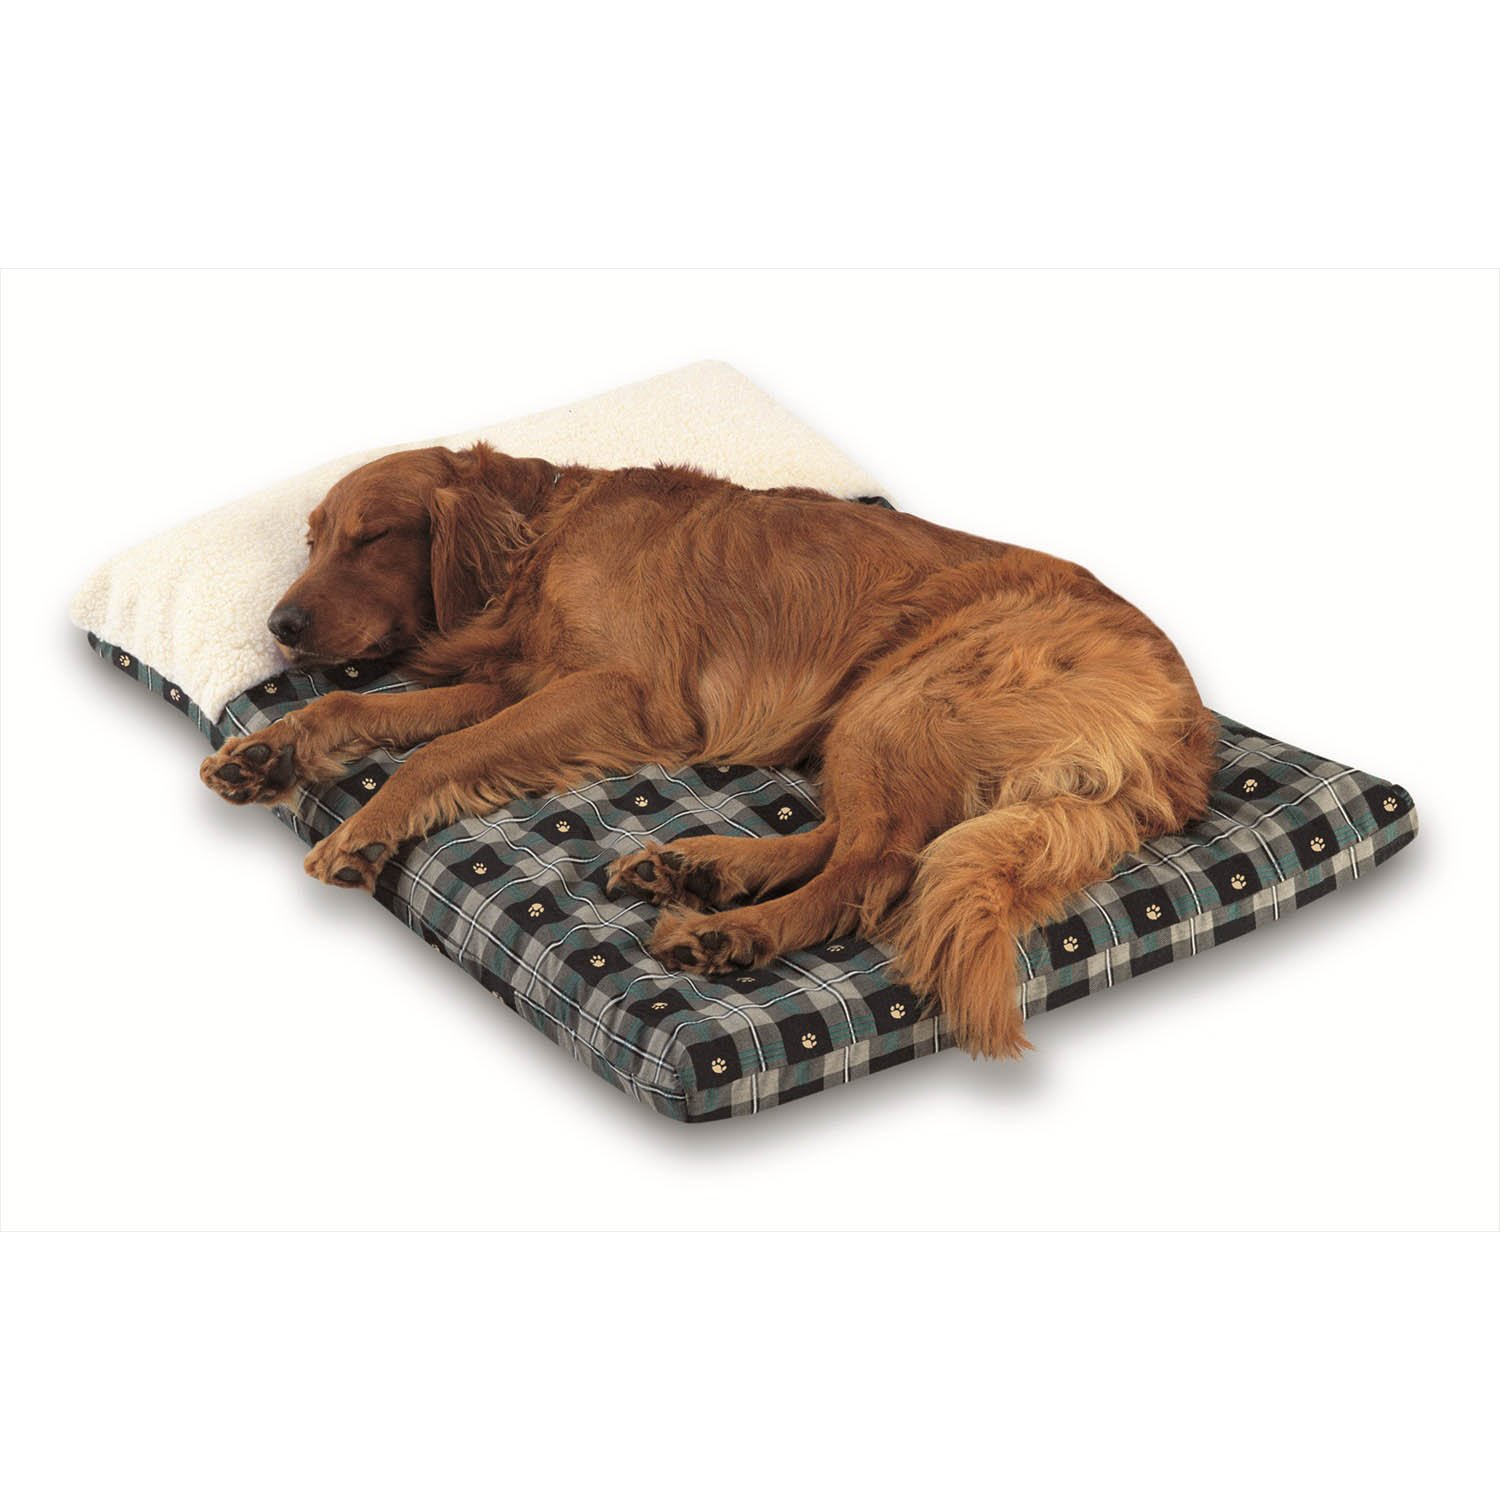 Dog Beds & Bedding Large Small Petco